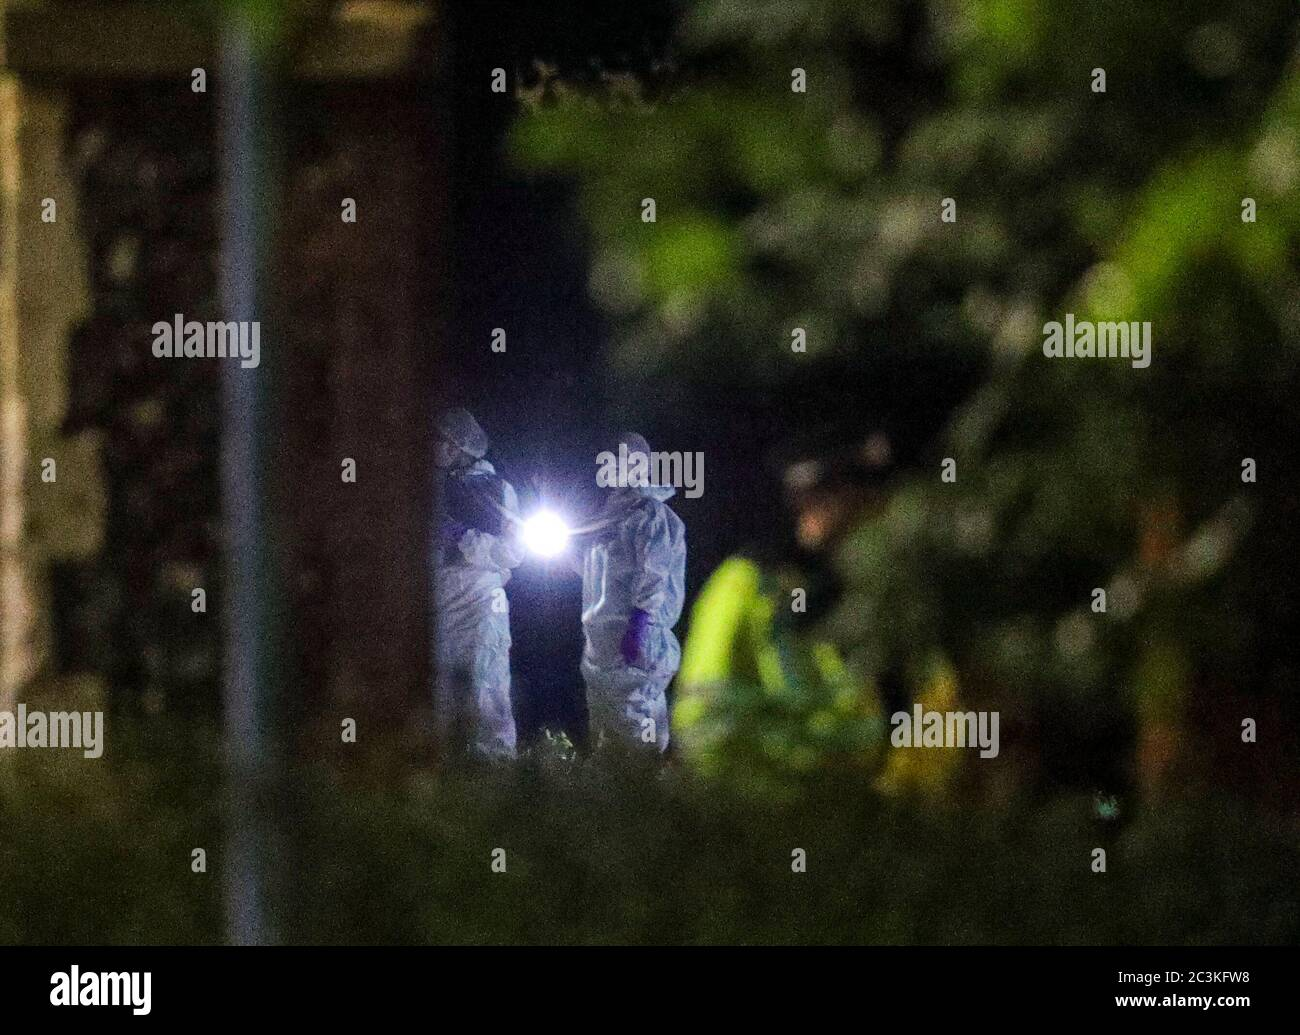 """Forensic officers at Forbury Gardens in Reading town centre where they are responding to a """"serious incident"""" Stock Photo"""